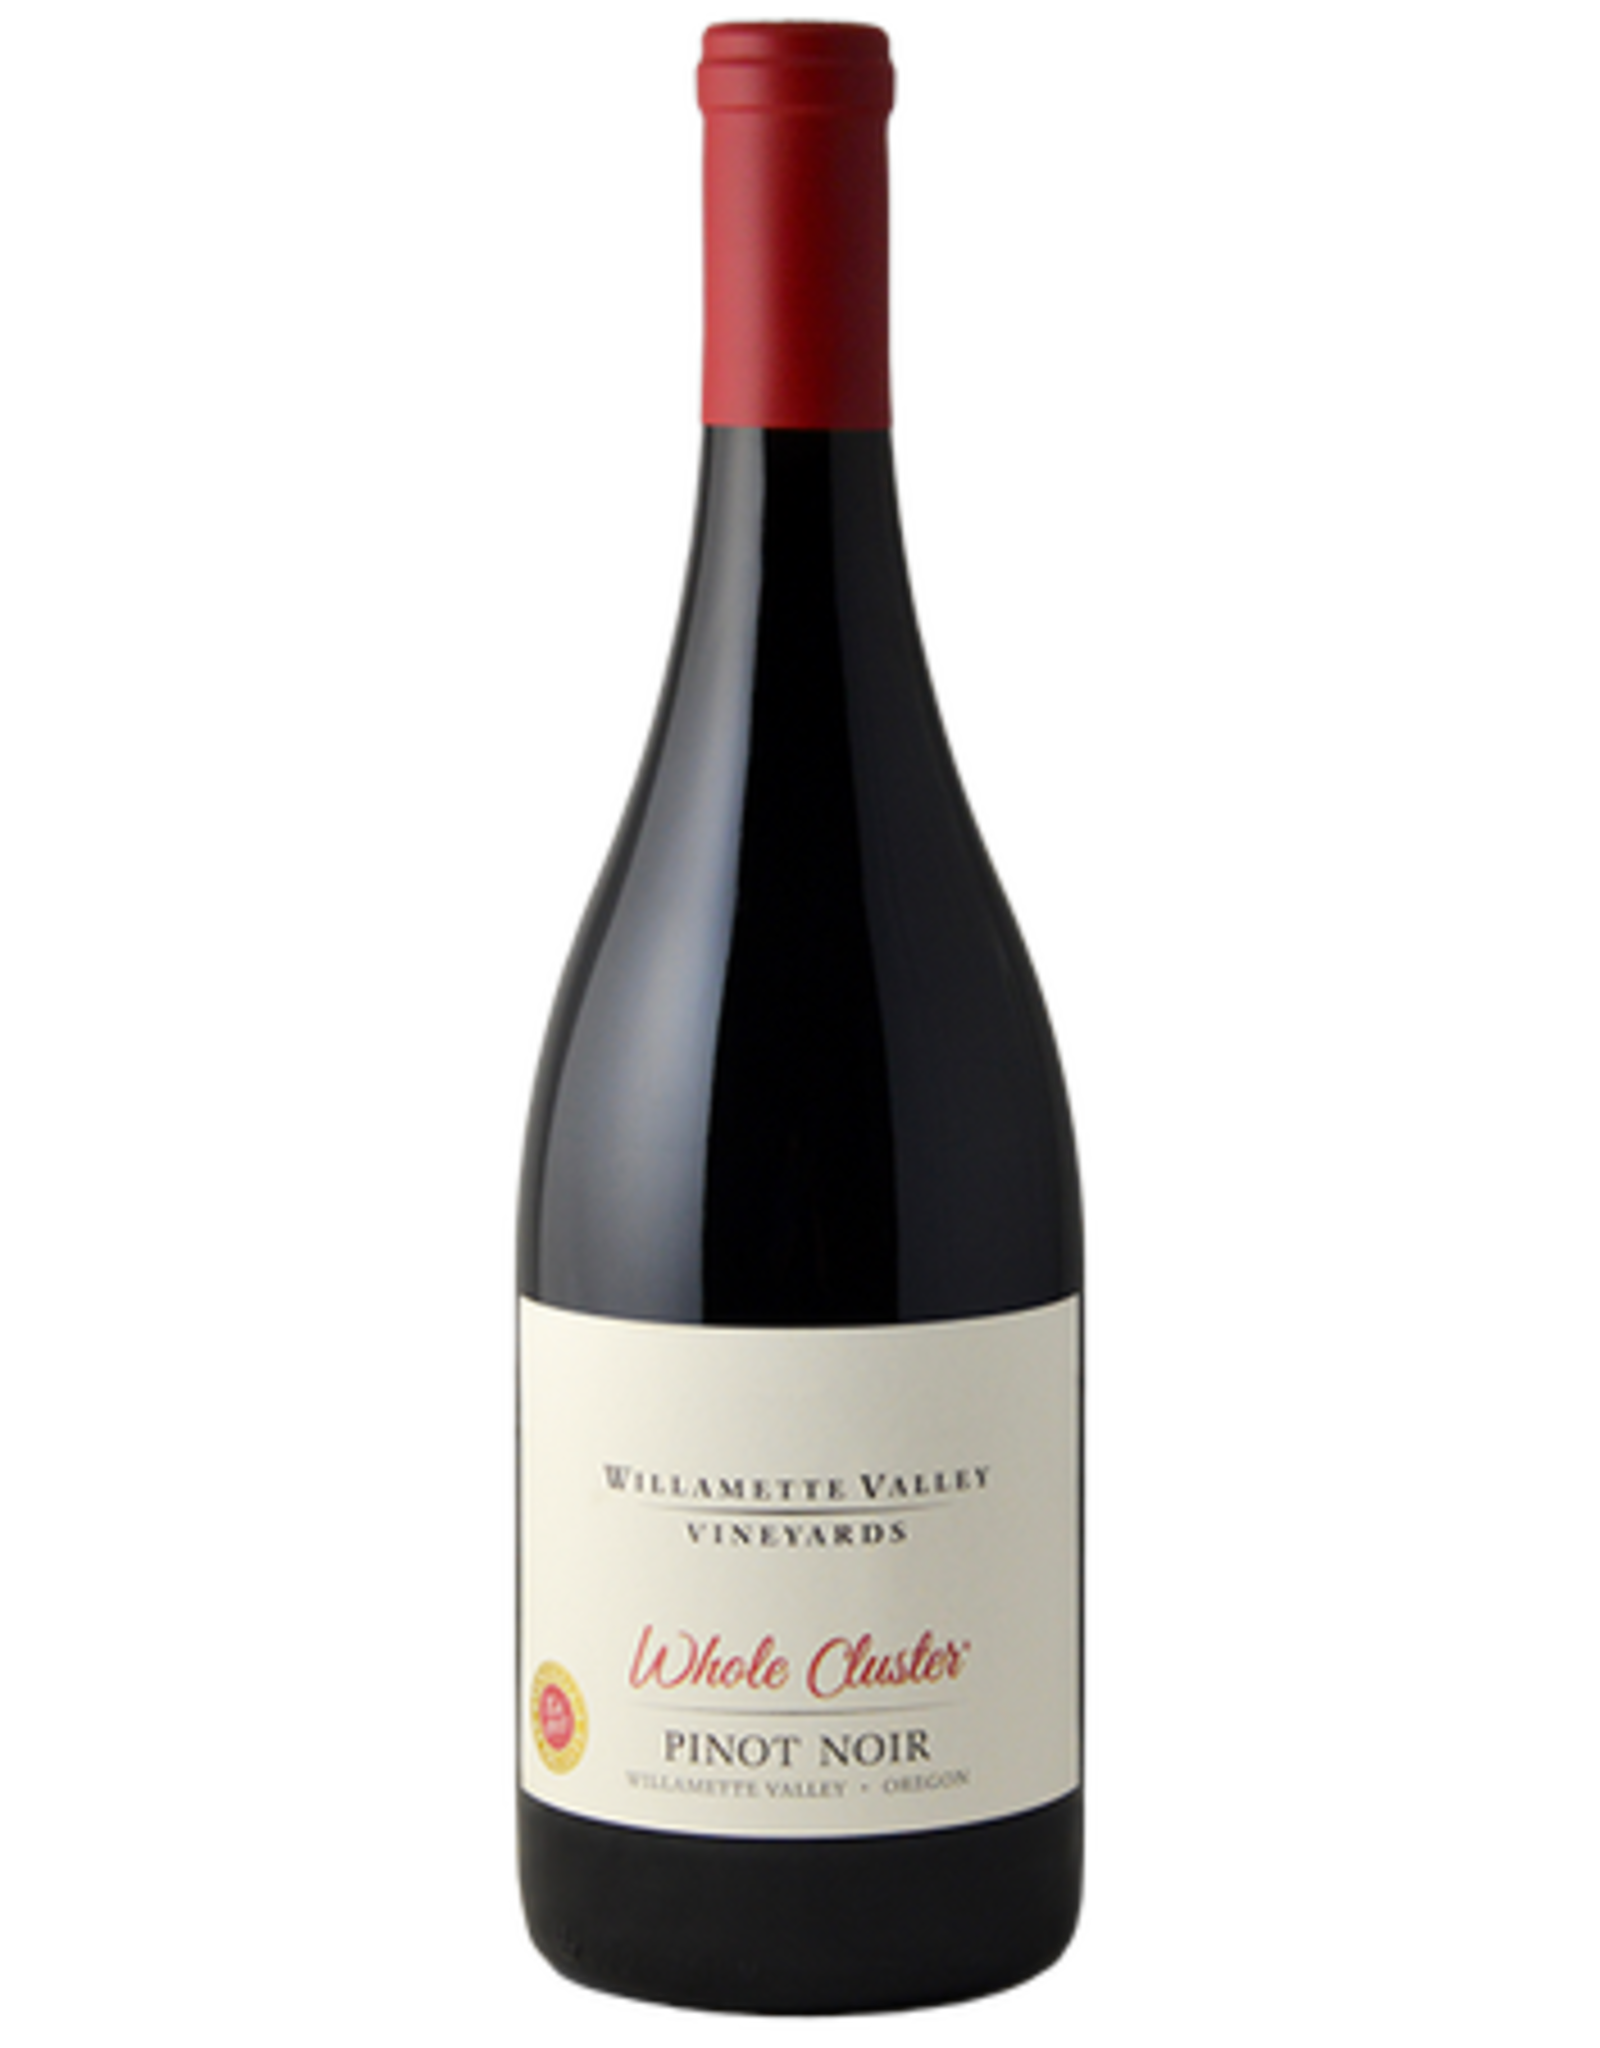 Willamette Valley Vineyards Whole Cluster Pinot Noir